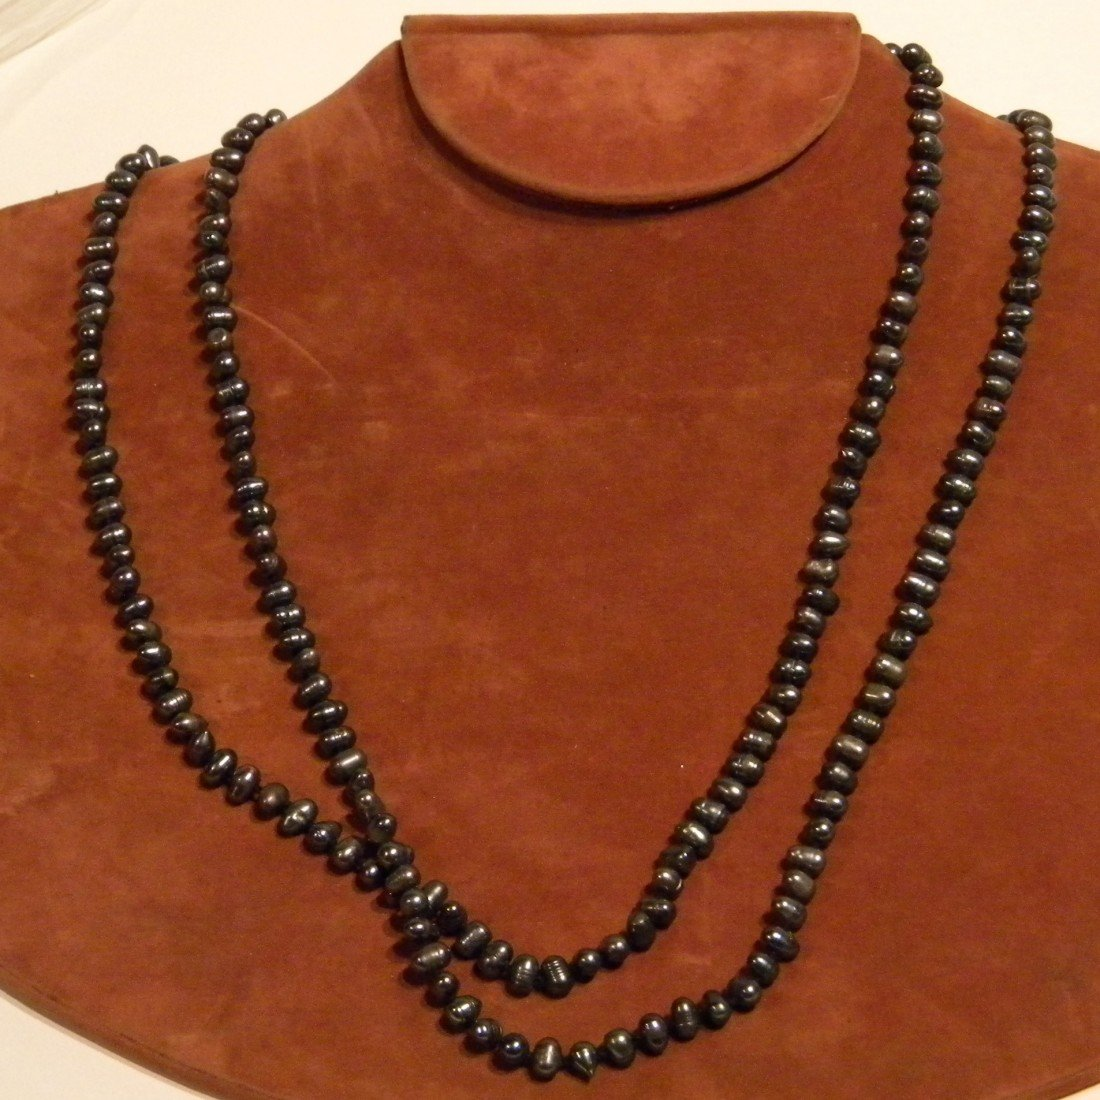 Black Cultured Strand of Pearls